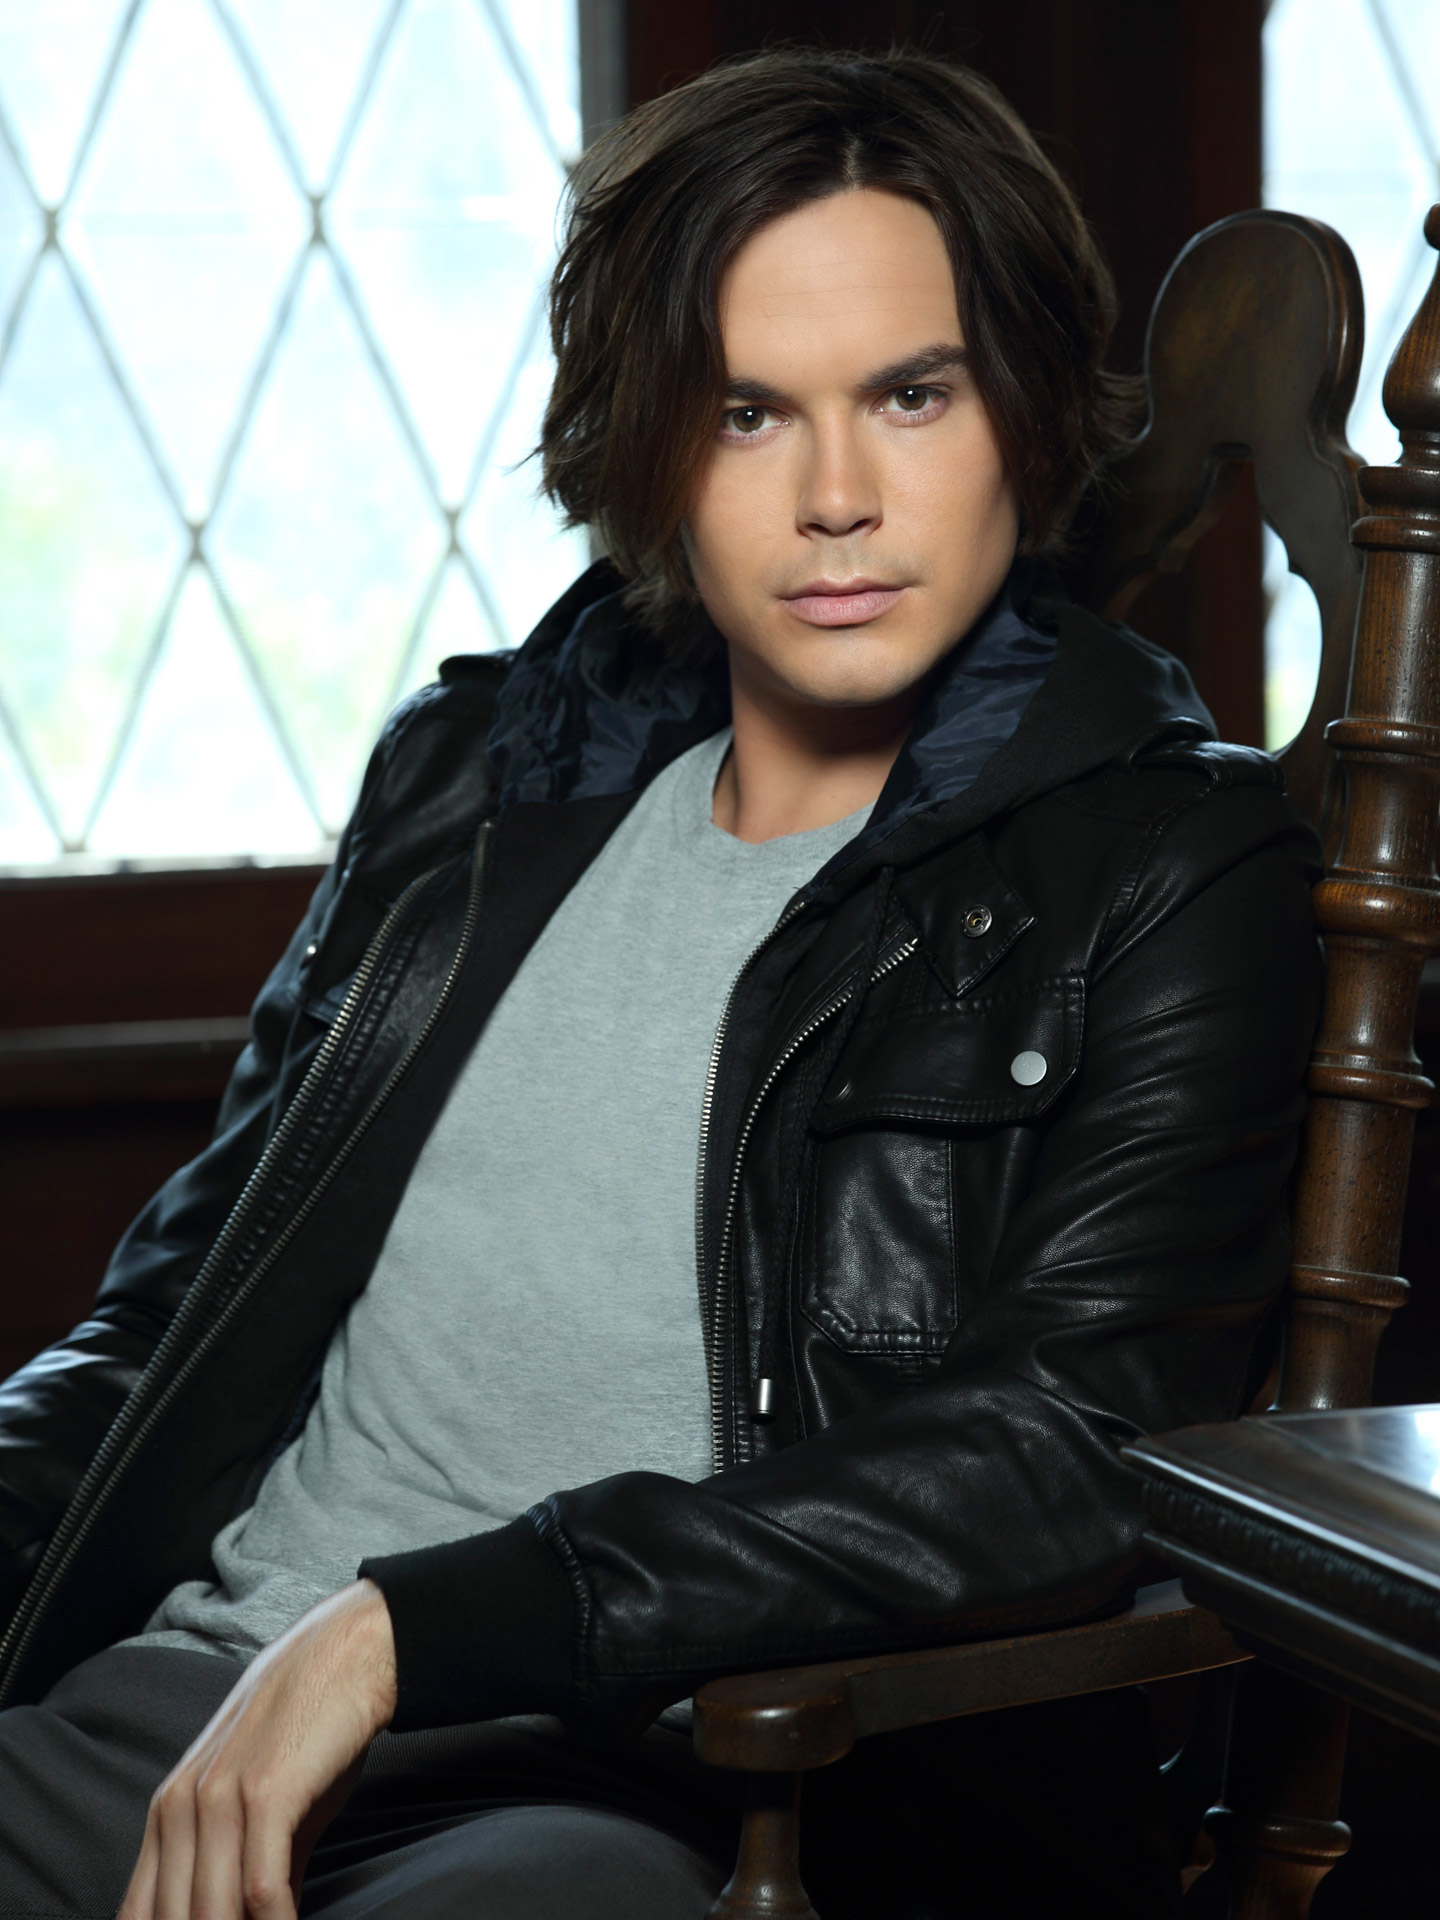 tyler blackburn photoshoot